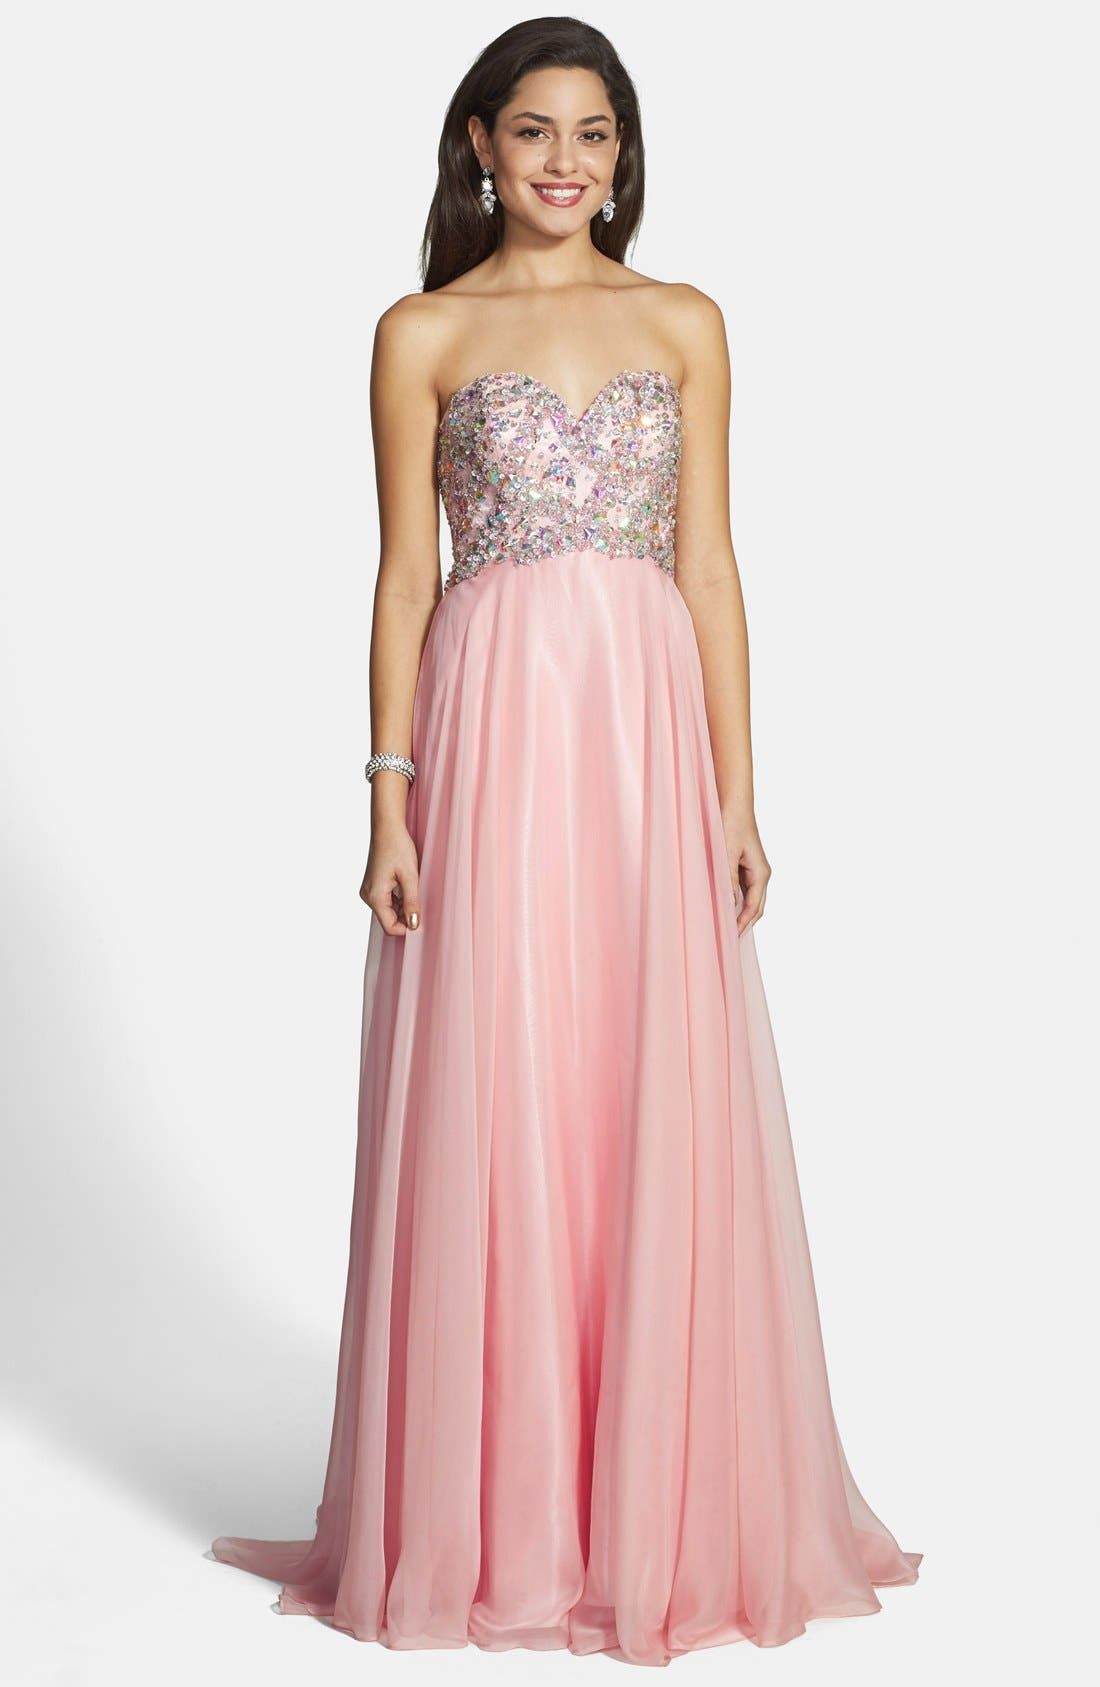 Alternate Image 1 Selected - Alyce Paris Embellished Strapless Chiffon Gown